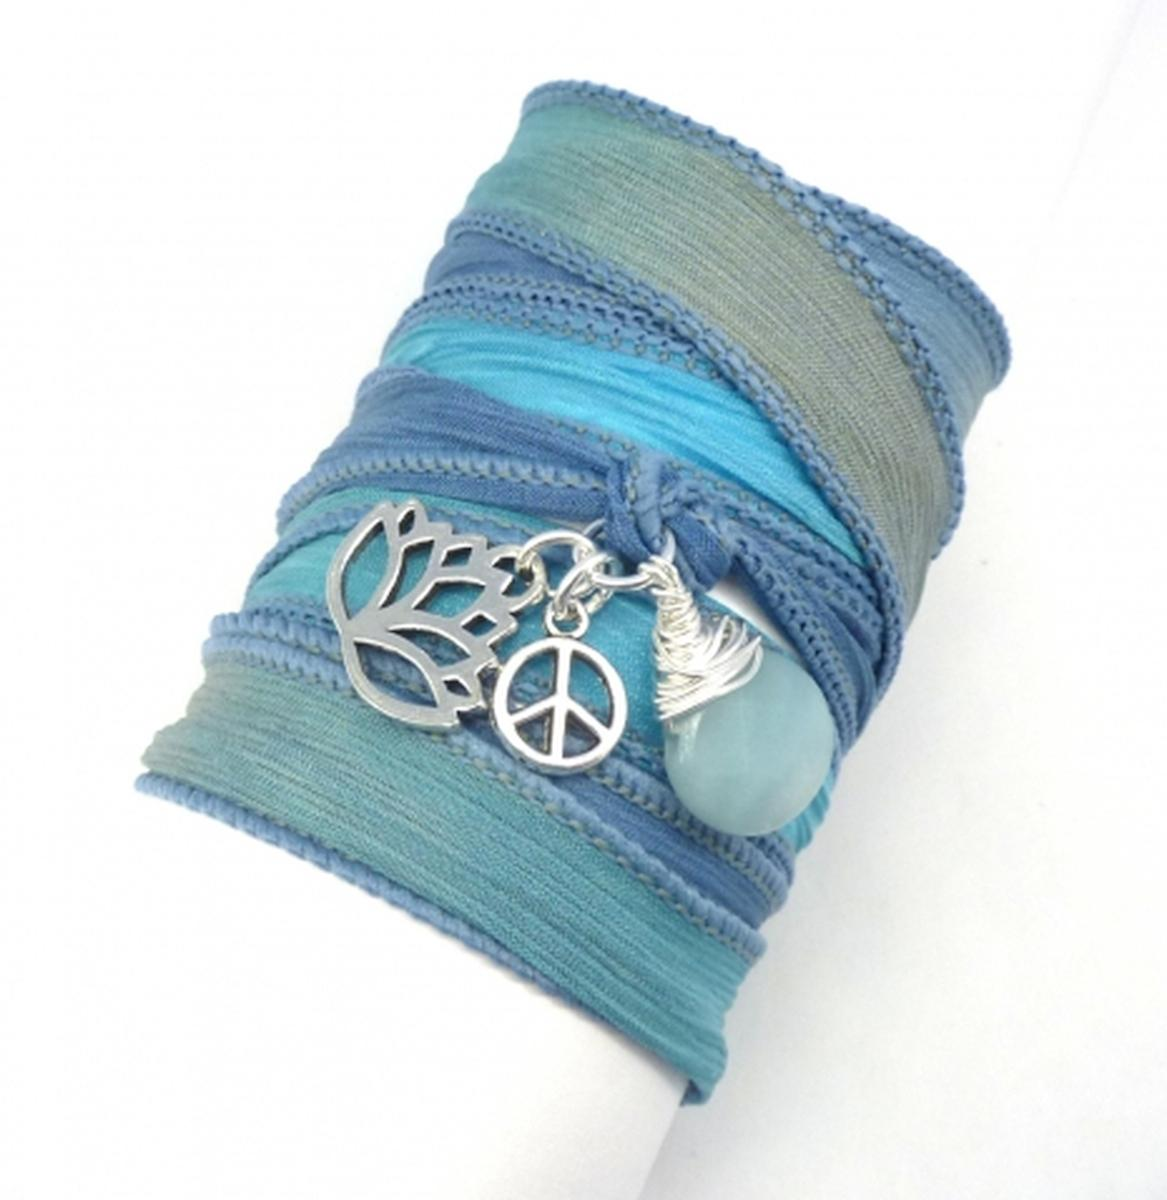 Experiencing a new beginning in your life? The lotus is the perfect talisman. http://t.co/0nxbnoIzuI http://t.co/RQEQOZtbrl